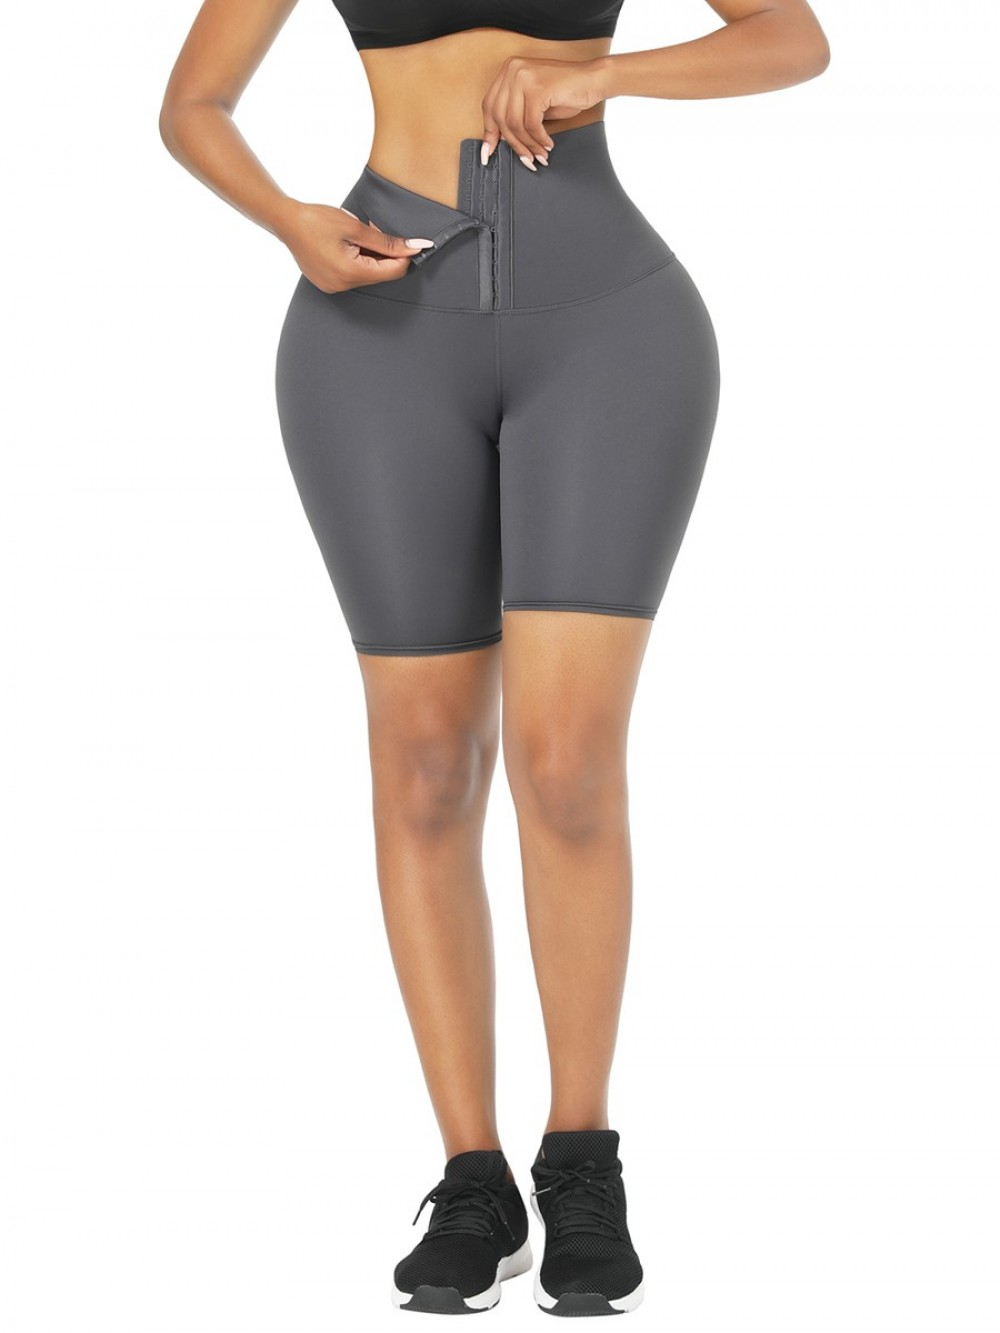 Gray 2-In-1 Tummy Control Waist Trainer Shorts Mid-Thigh Compression